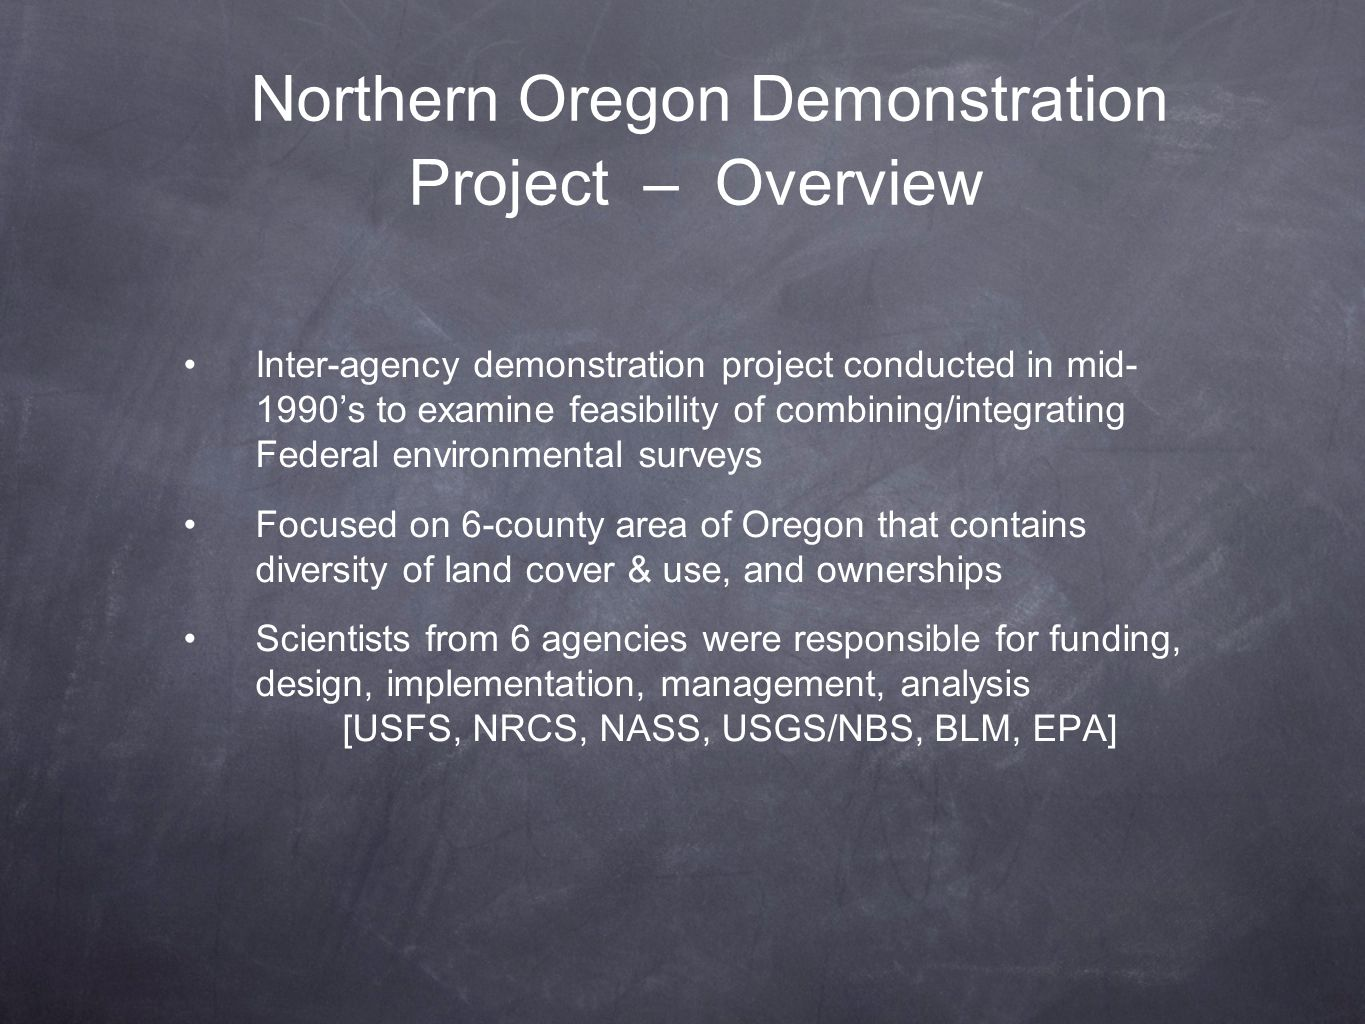 Northern Oregon Demonstration Project – Overview